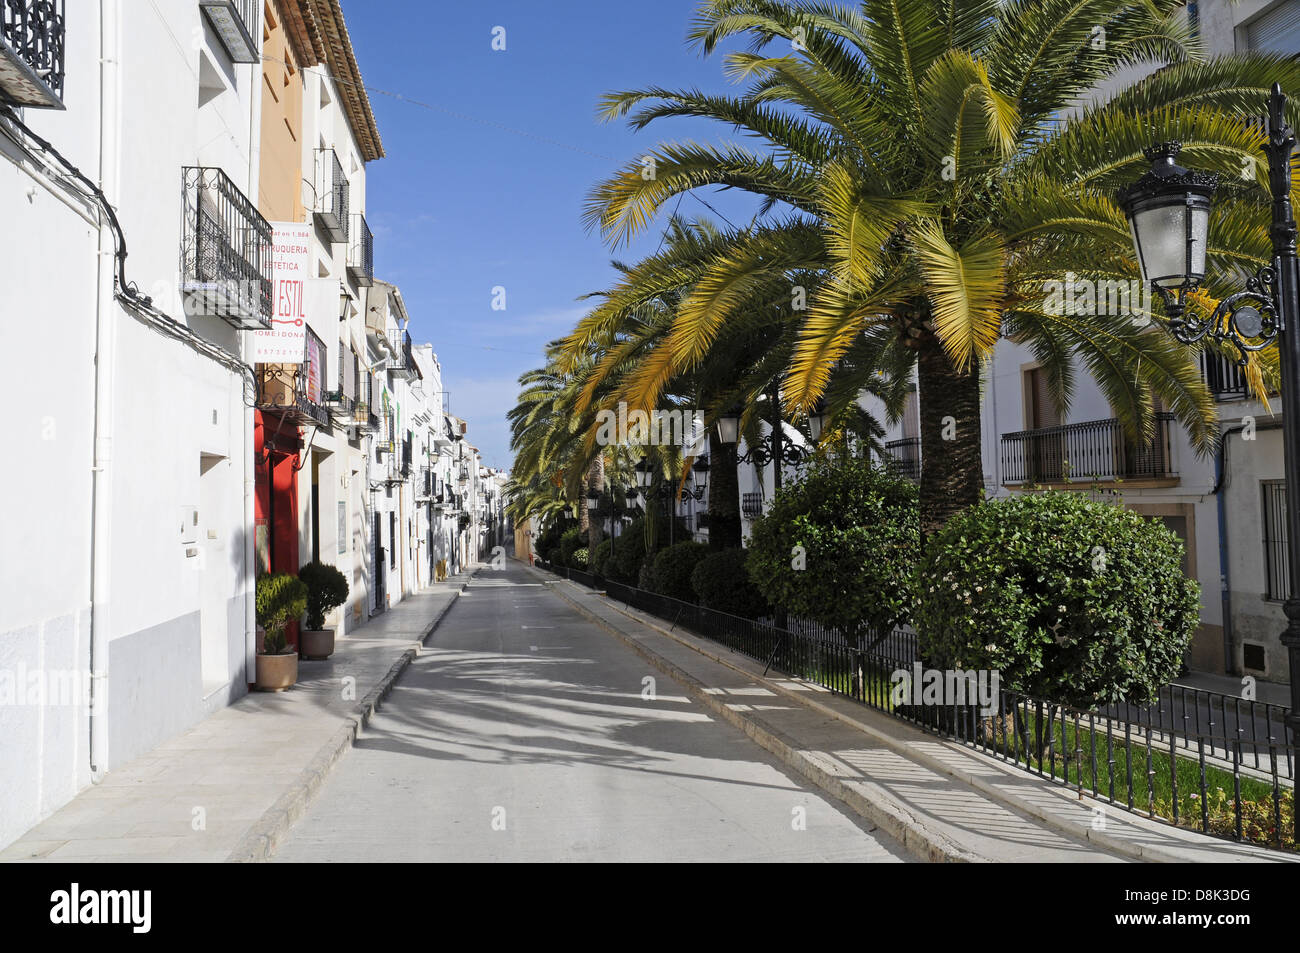 Road with palm trees in the old town Stock Photo